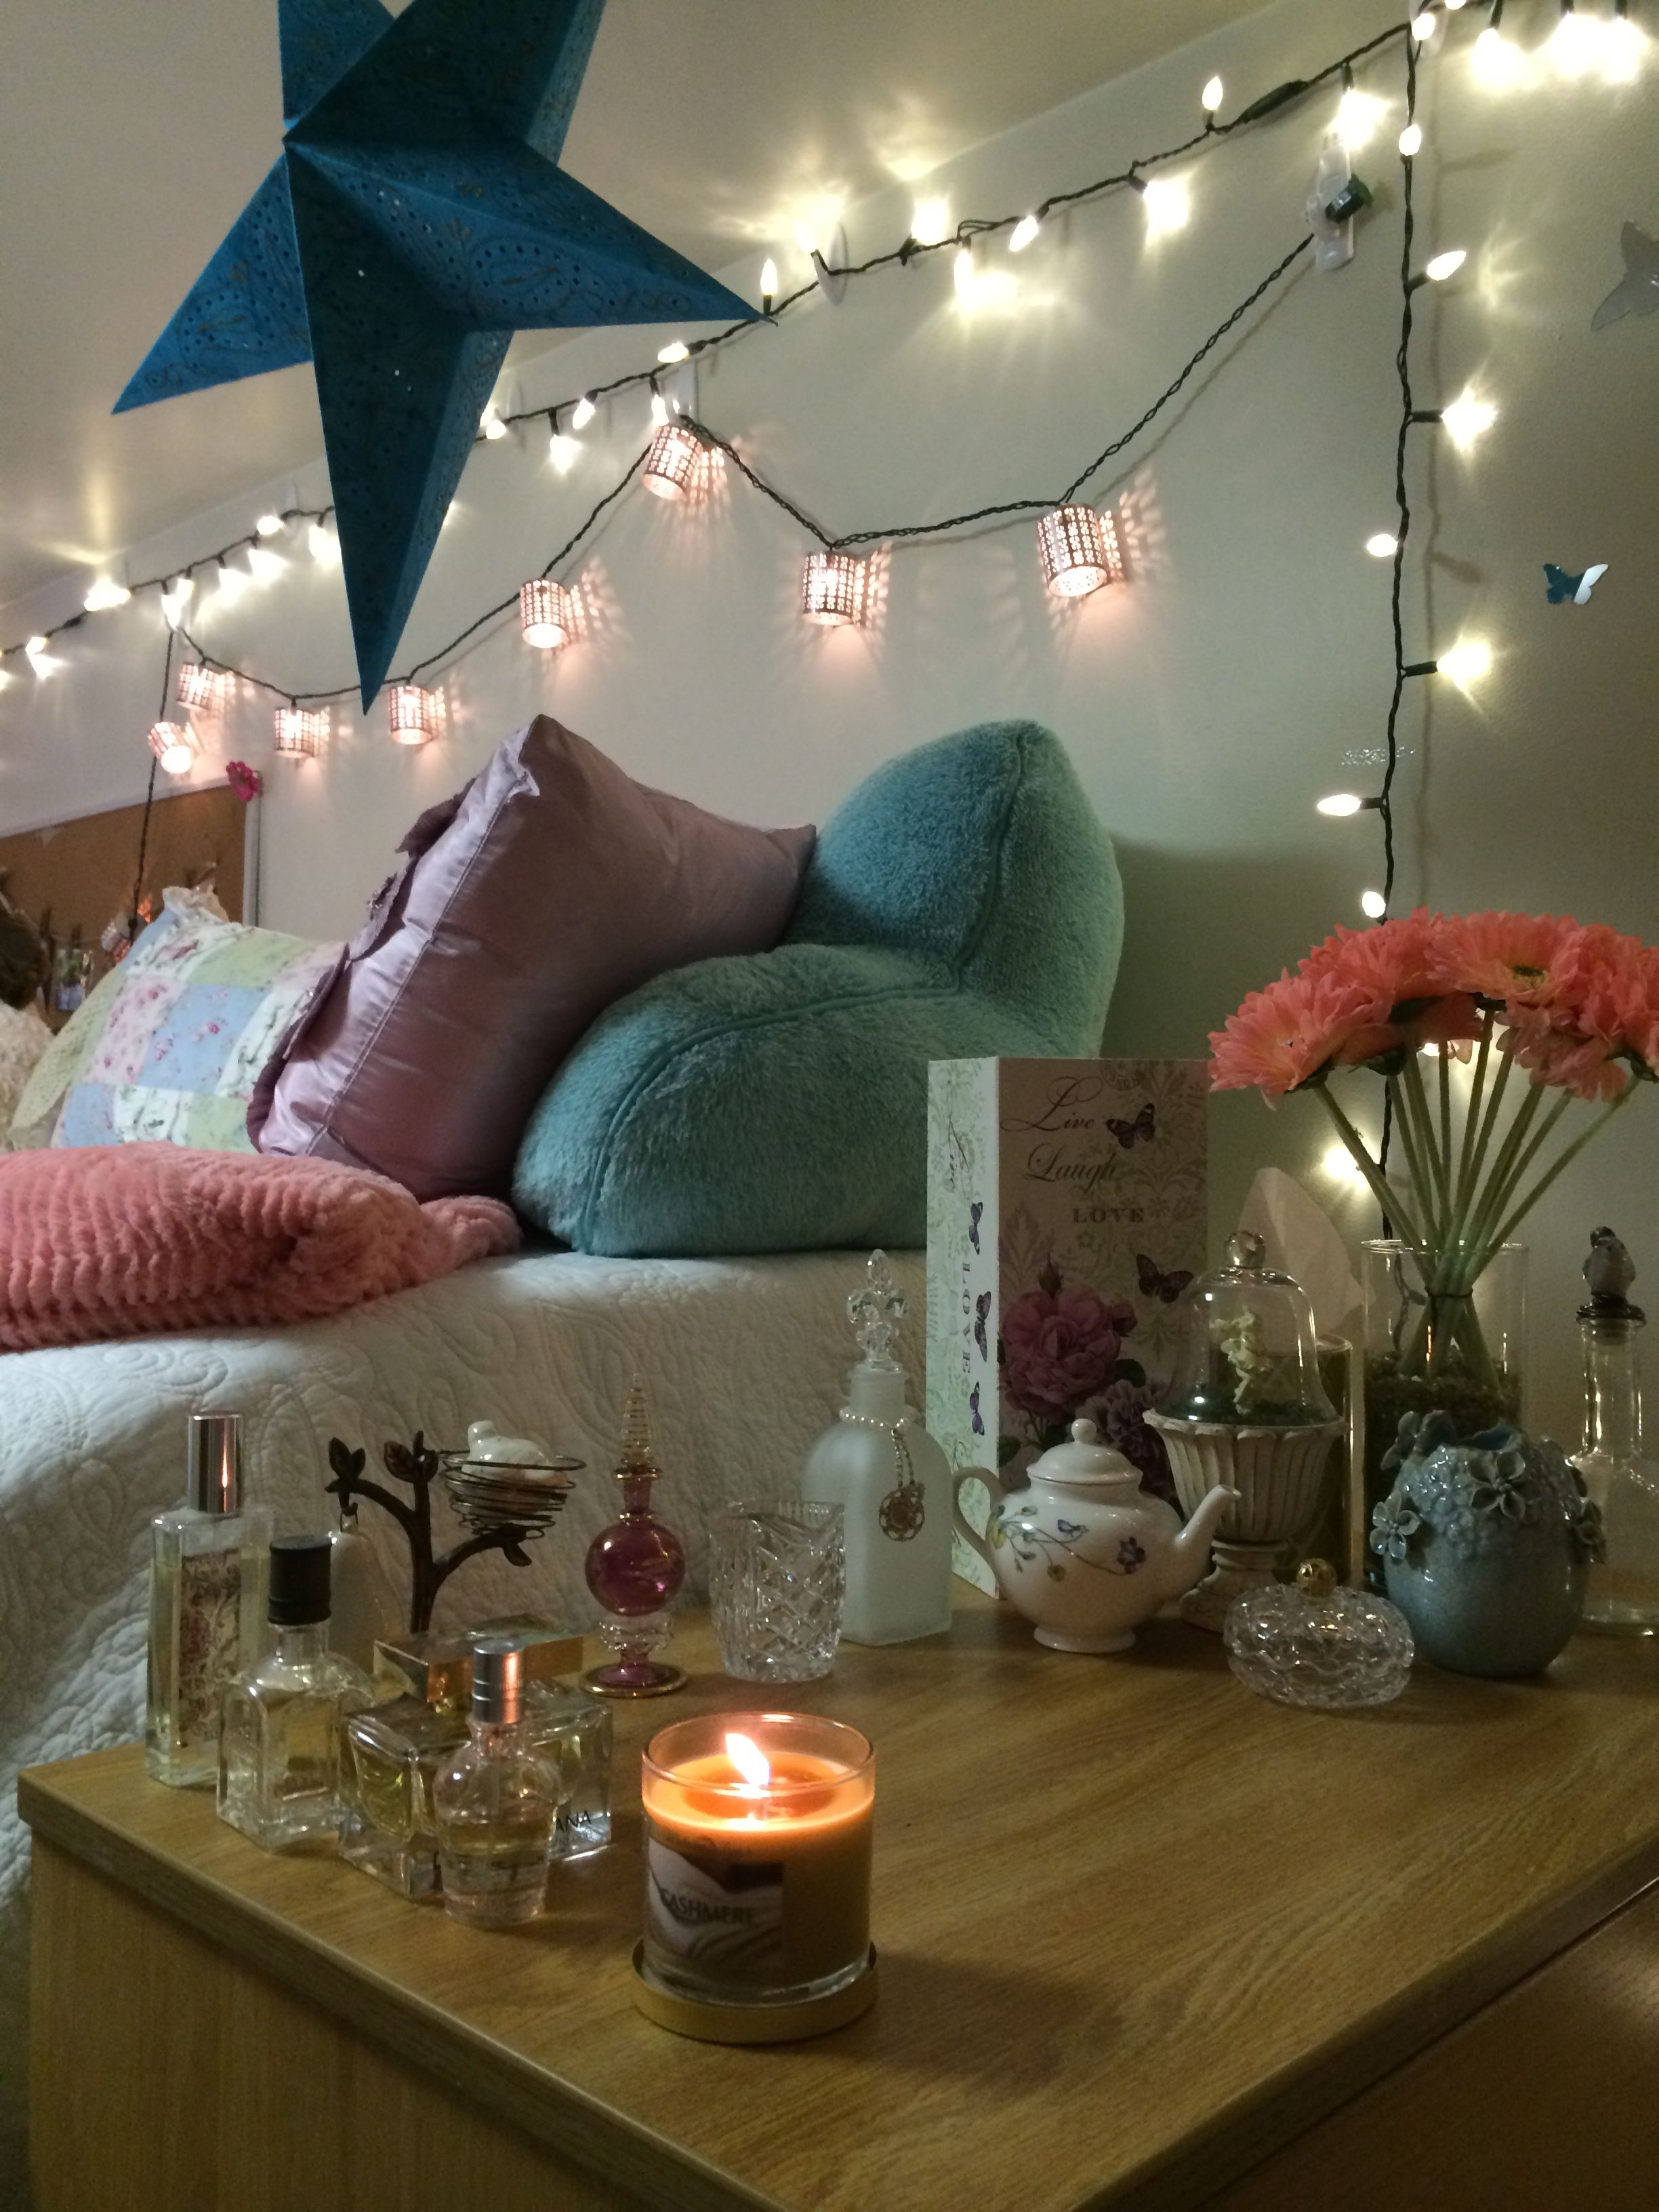 Decorating Ideas > 1000+ Images About Dorm Room Ideas On Pinterest ~ 210351_Byu Dorm Room Ideas